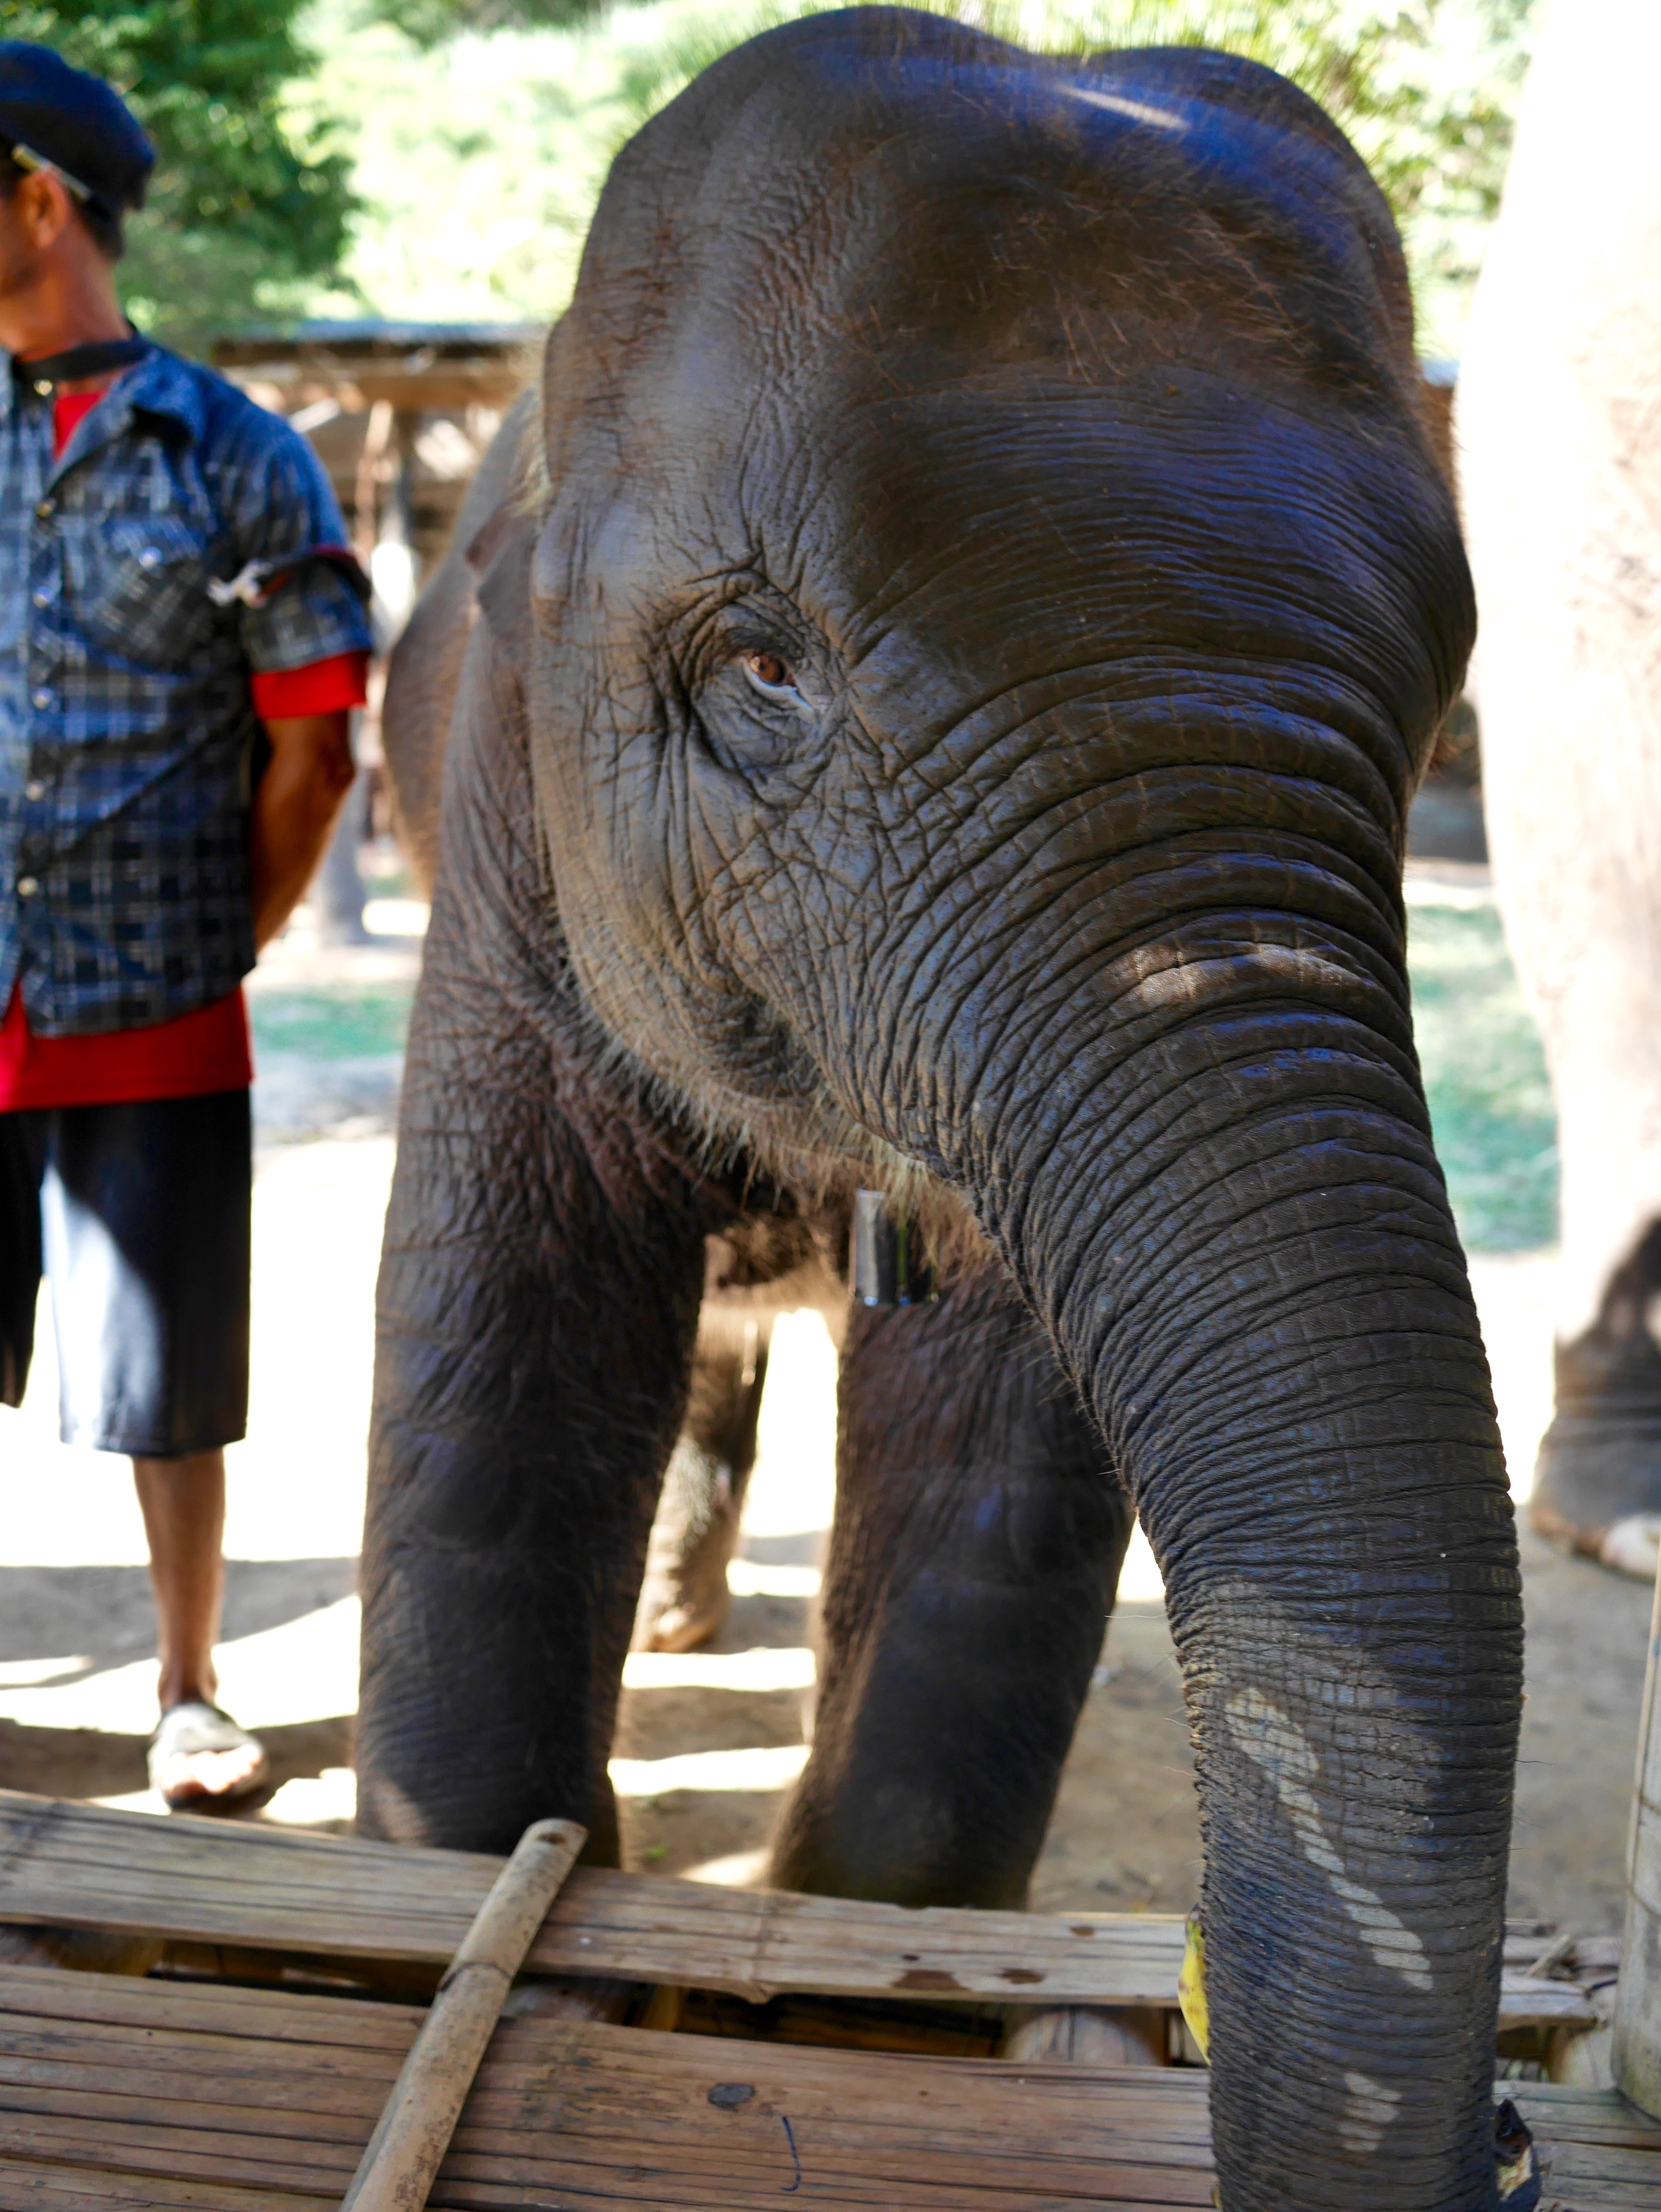 Blue Elephant Tours baby Chiang Mai Thailand thesweetwanderlust.com